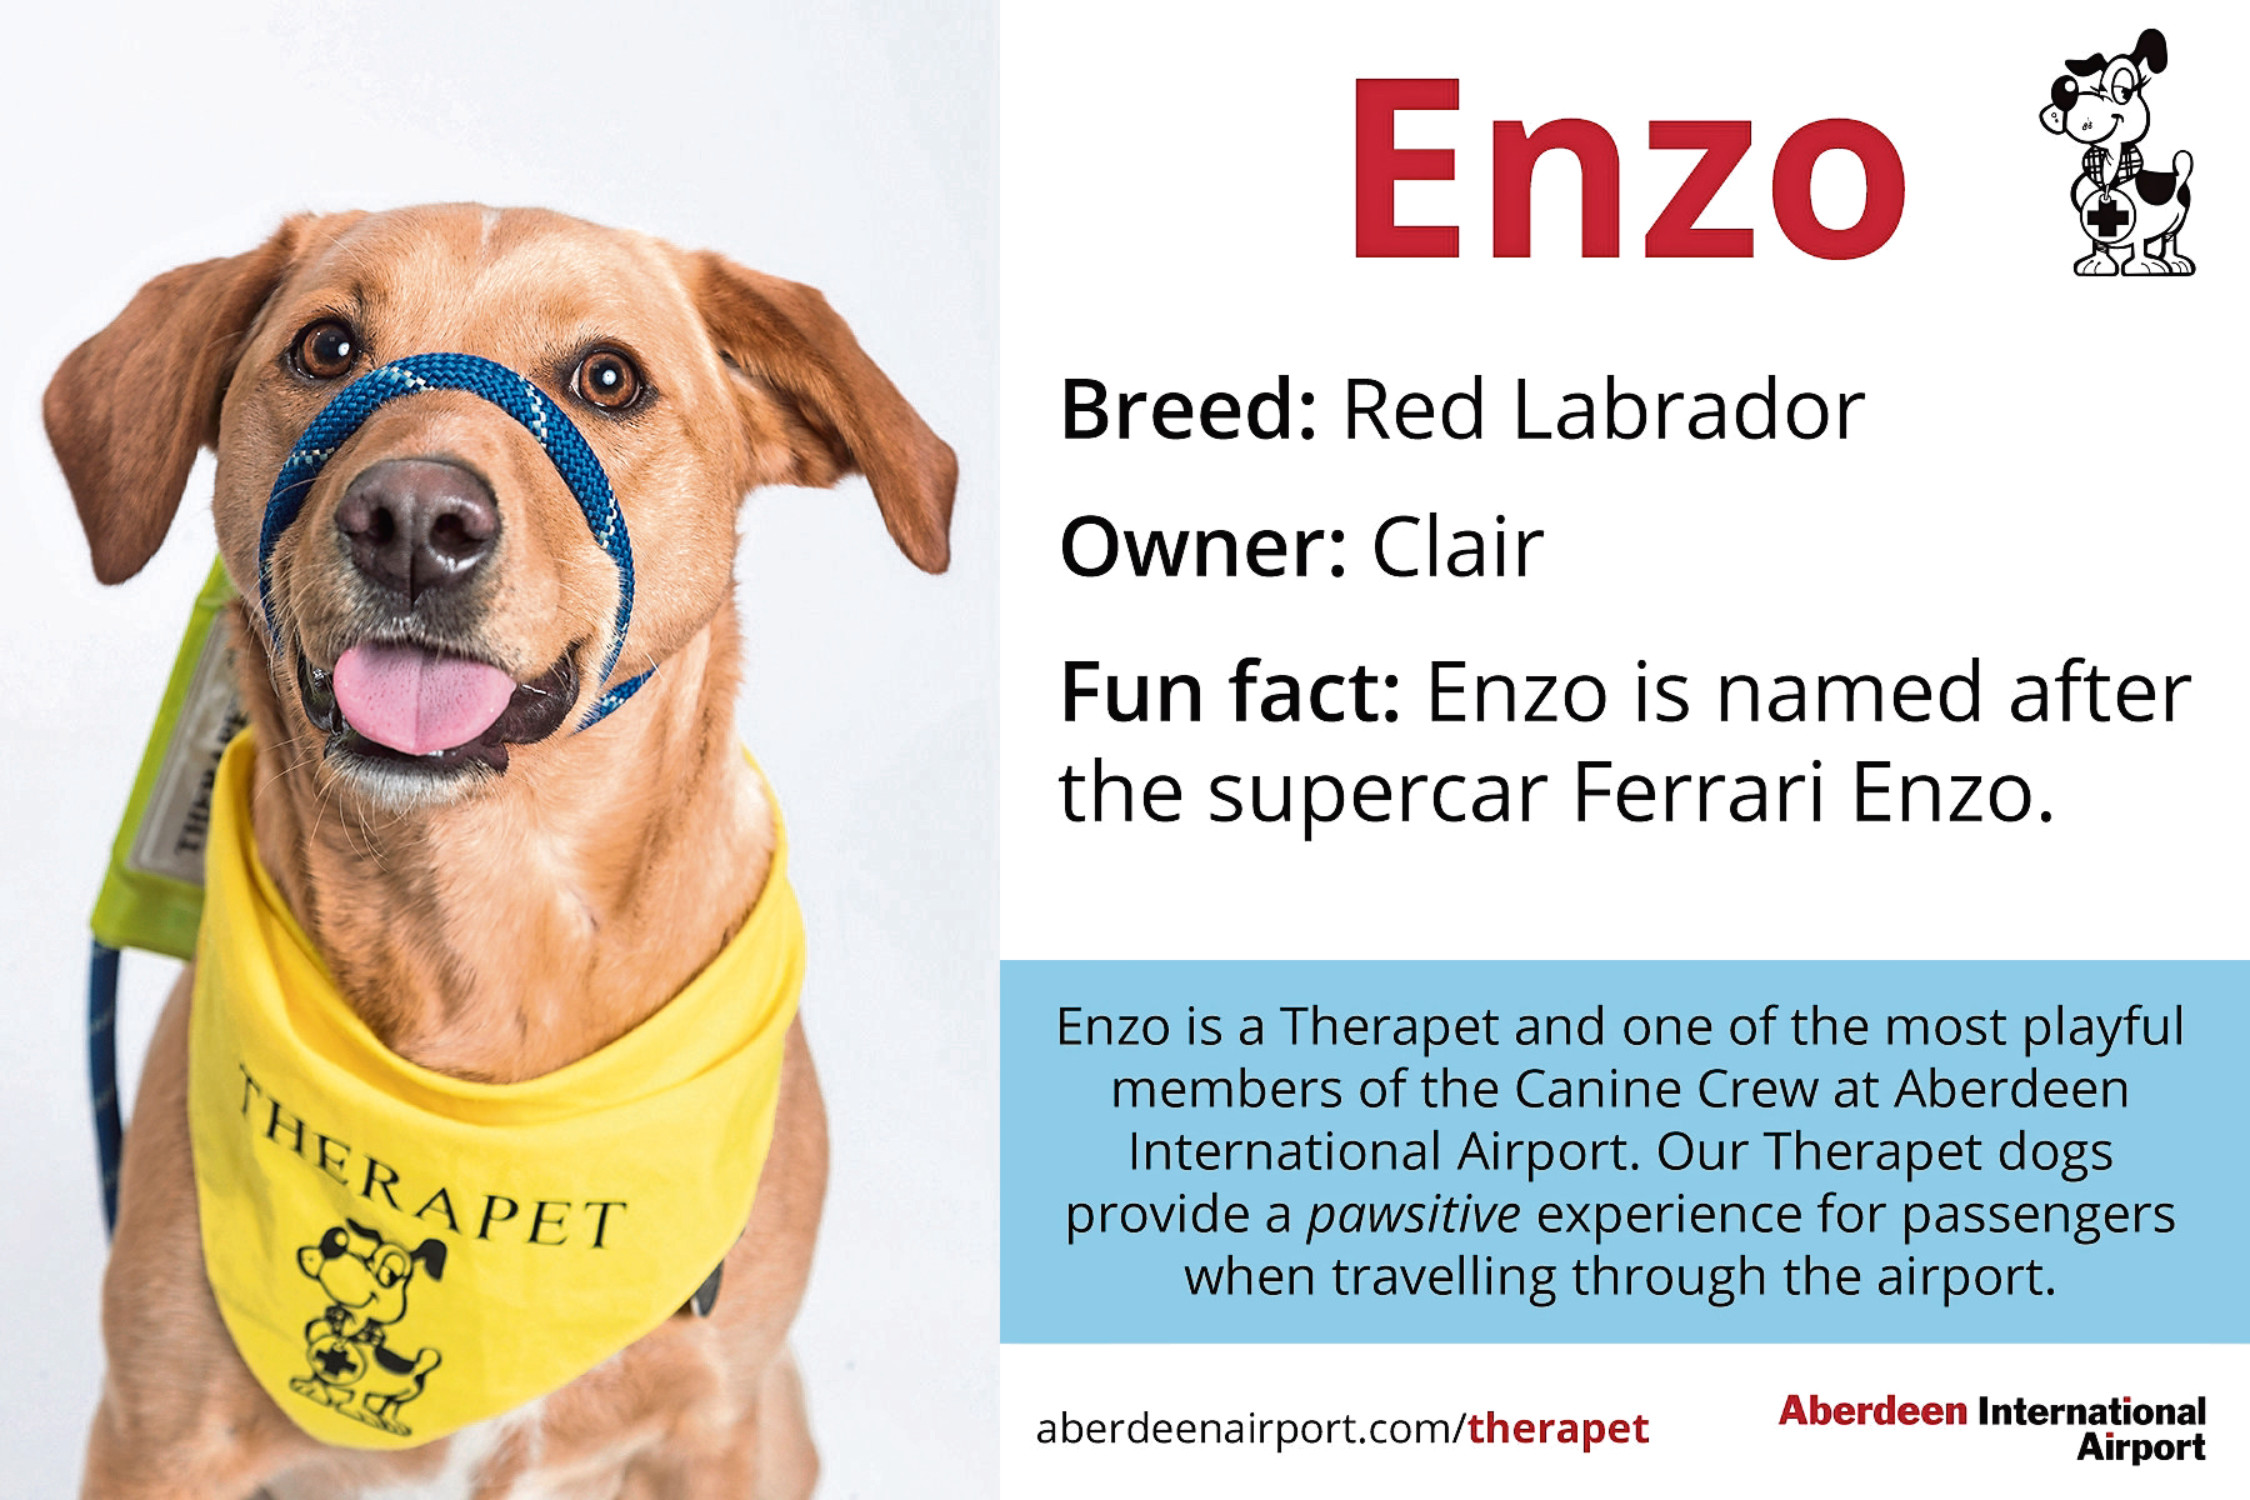 Enzo will be among the therapets at Aberdeen International Airport tomorrow